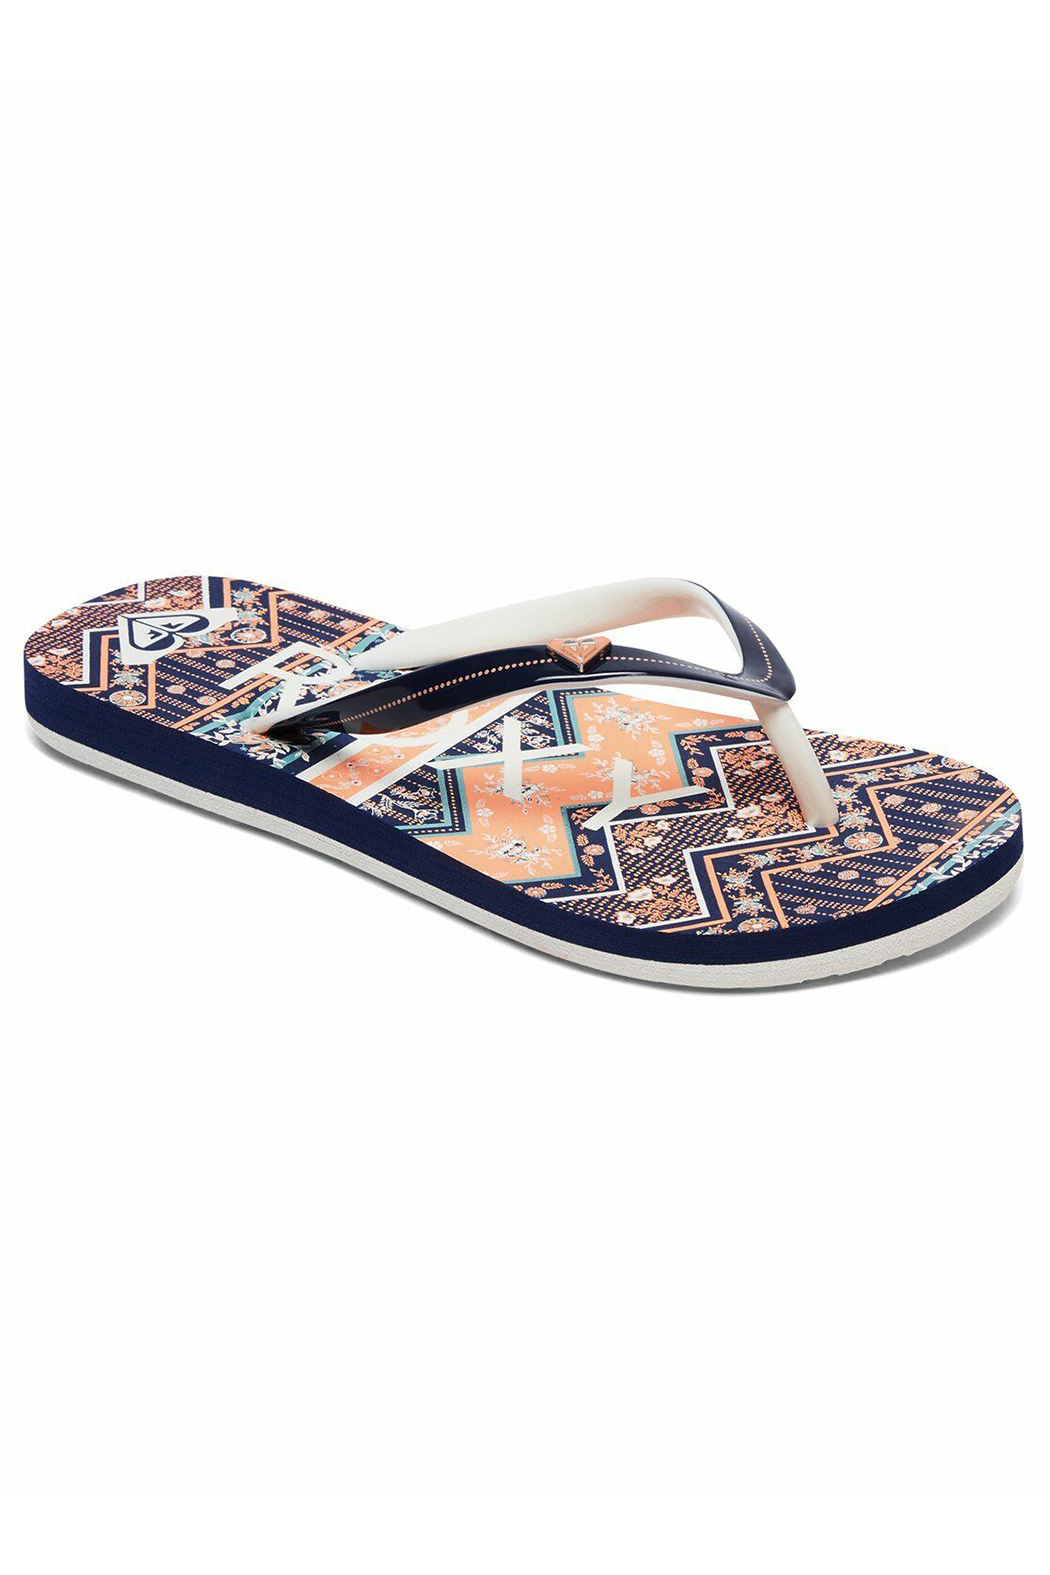 Roxy Pebbles Flip Flops - Front Cropped Image